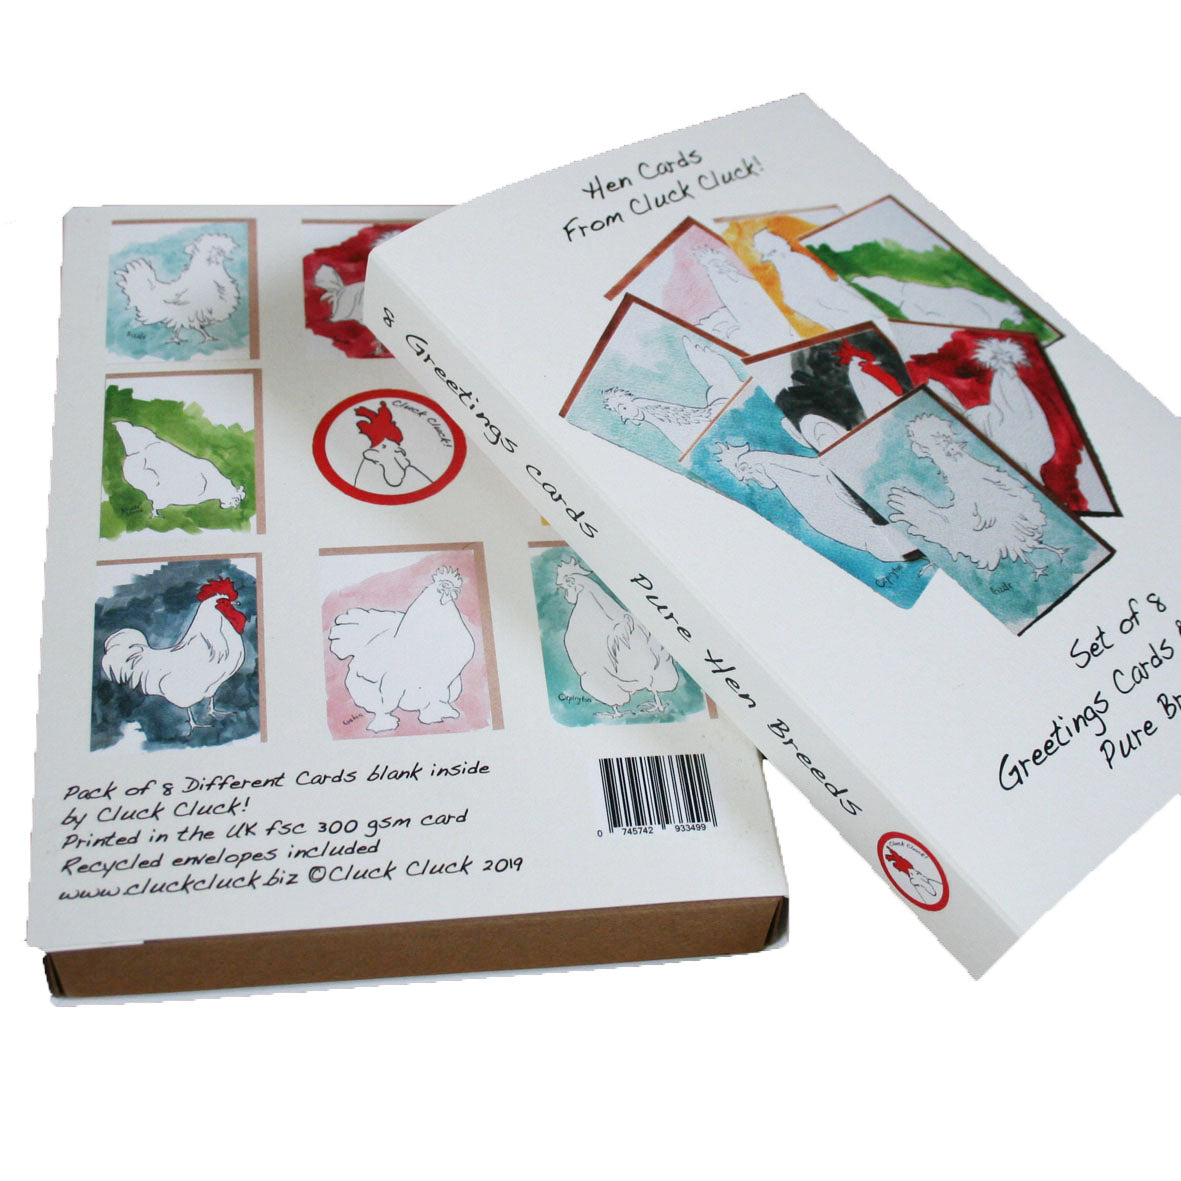 Box Set of 8 Hens Cards